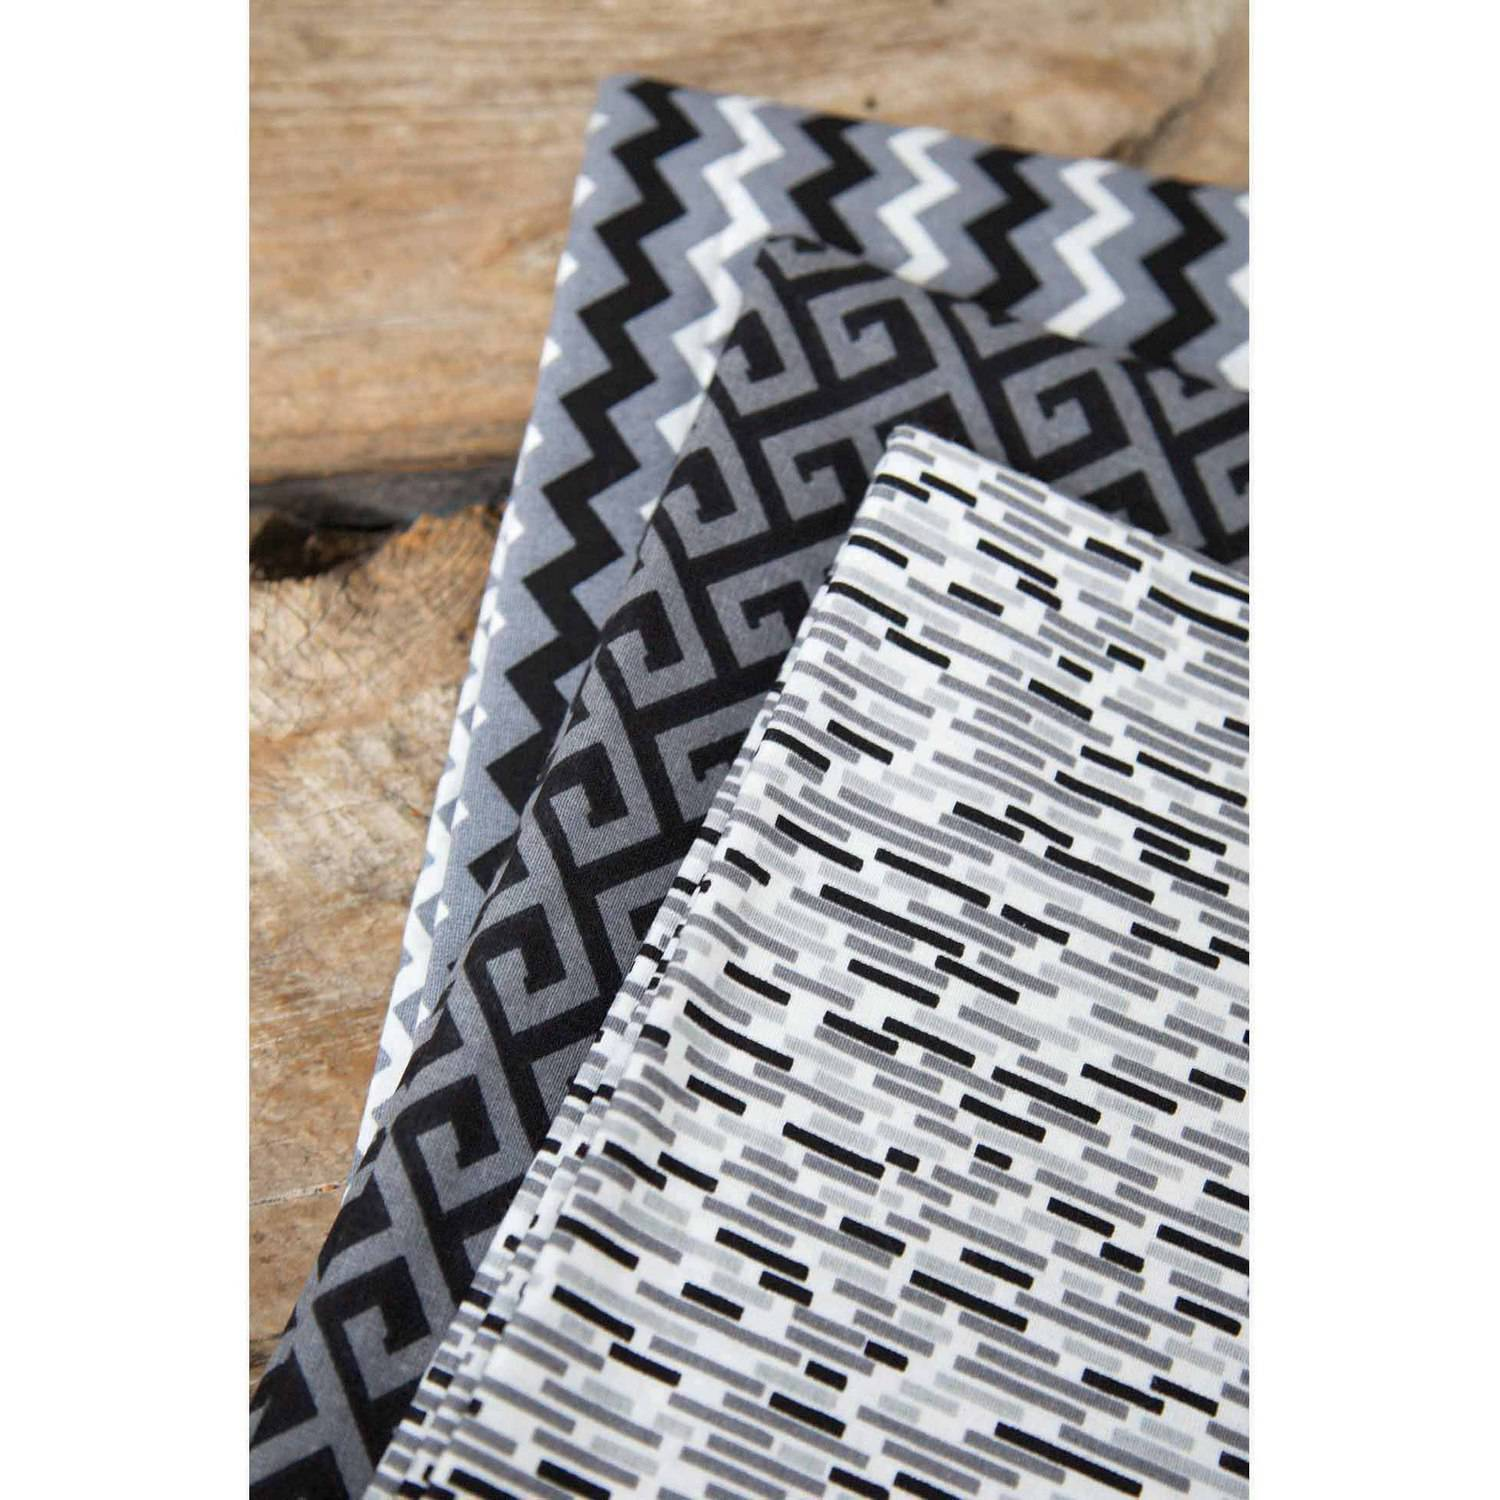 "Black Geo Vibe Printed Cotton Fabric Bundle, Tonal Chevron Black-Tonal Greek Key Black-Tonal Dash Black, 43/44"" Width, 2-yd Cuts"